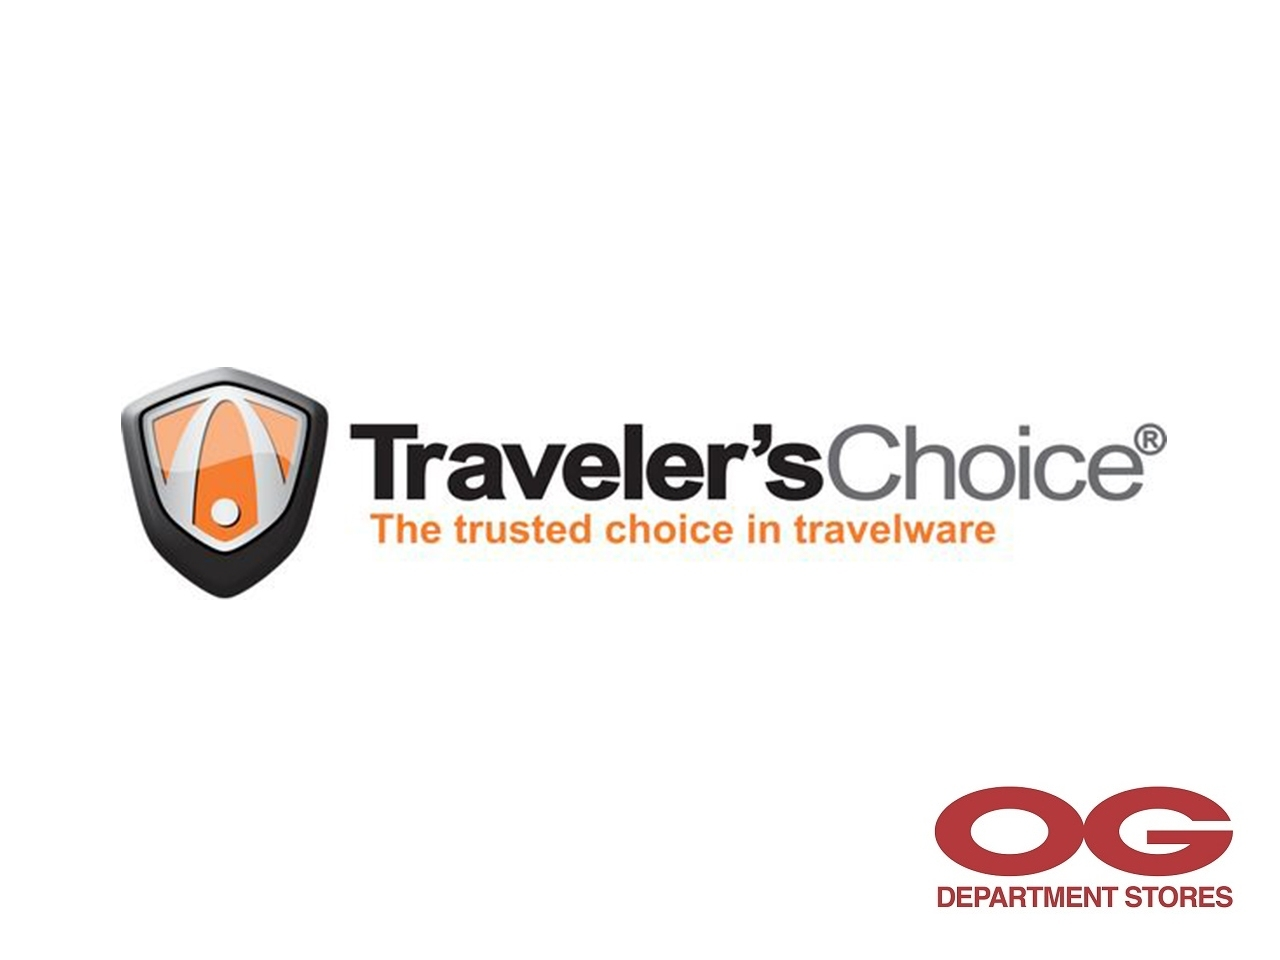 TRAVELER'S CHOICE All Regular-Priced Luggage @ 30% off